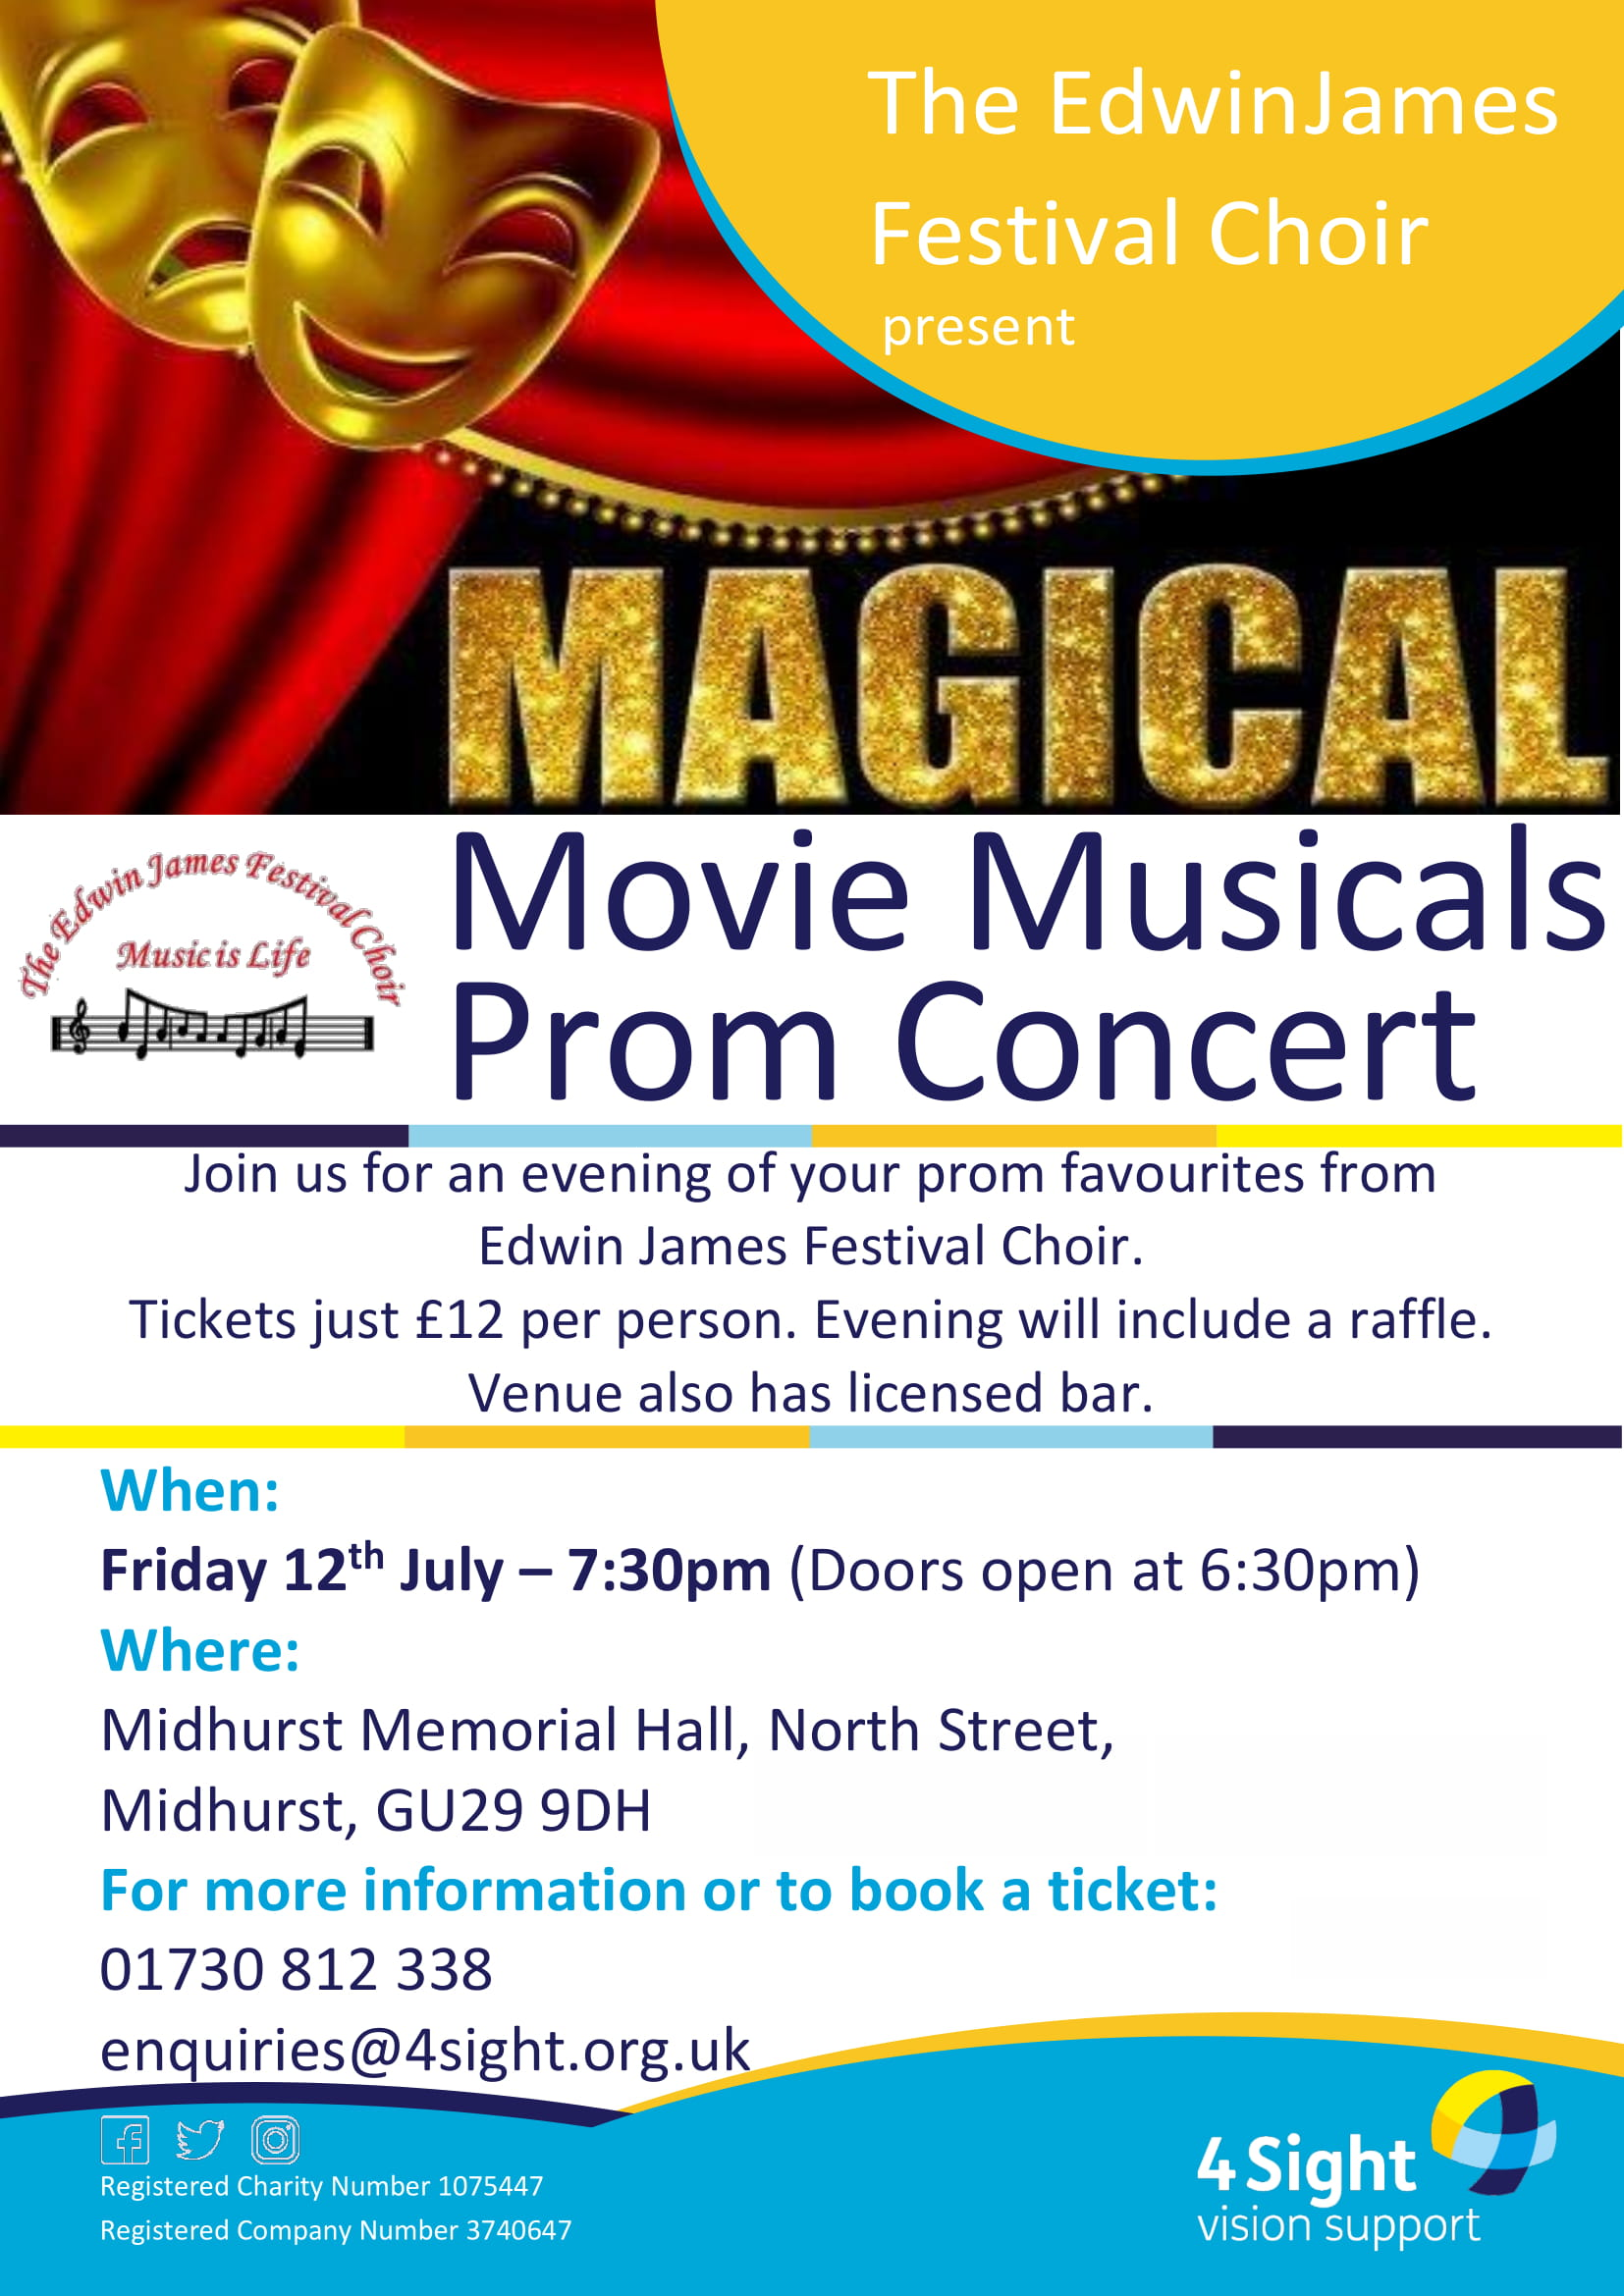 Magical Movie Musicals Prom Concert Poster